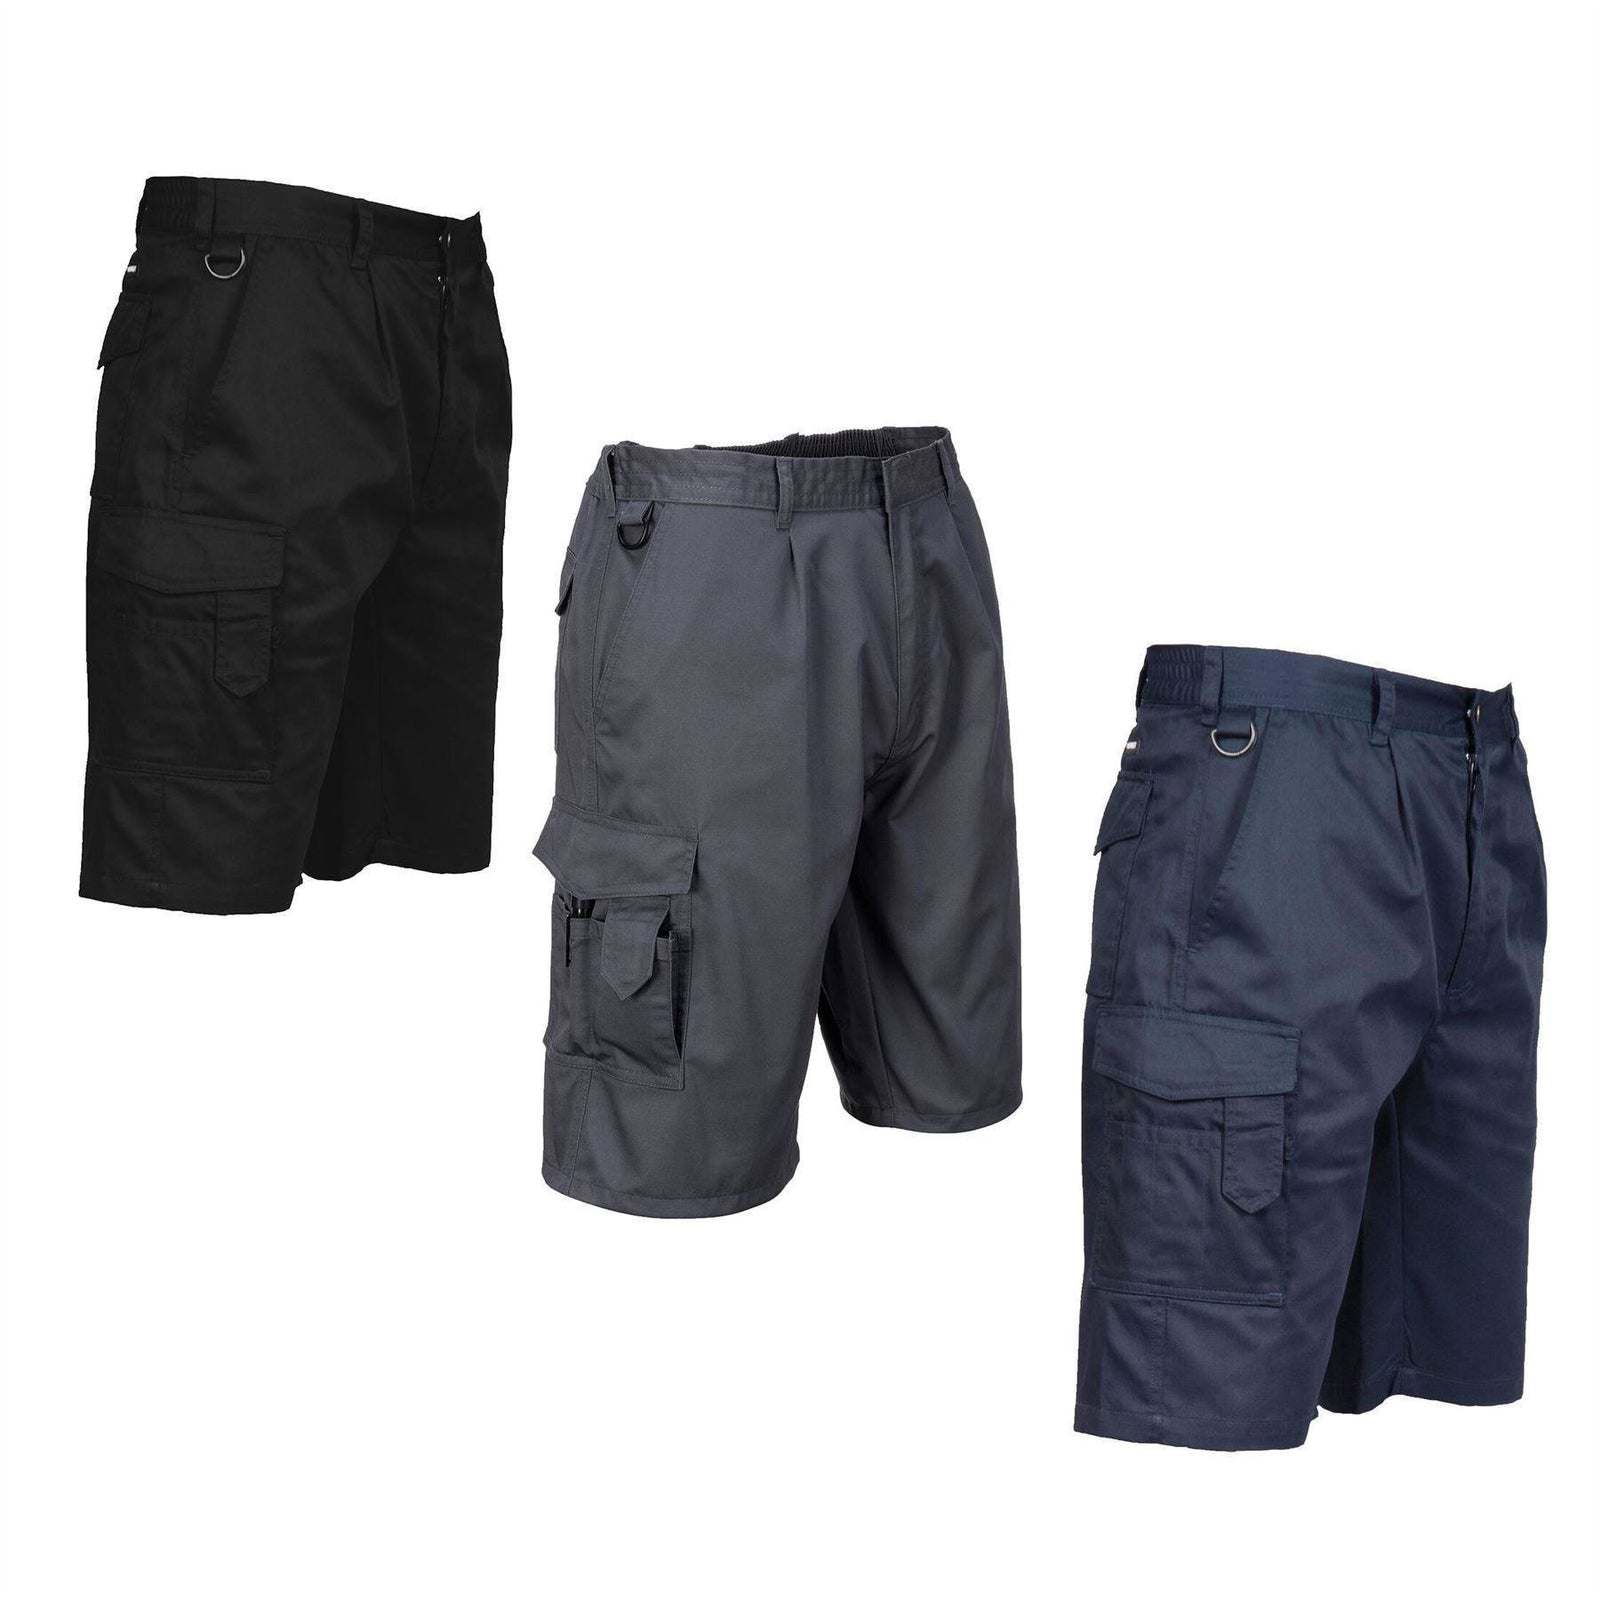 Portwest Combat Shorts S790 - reid outdoors